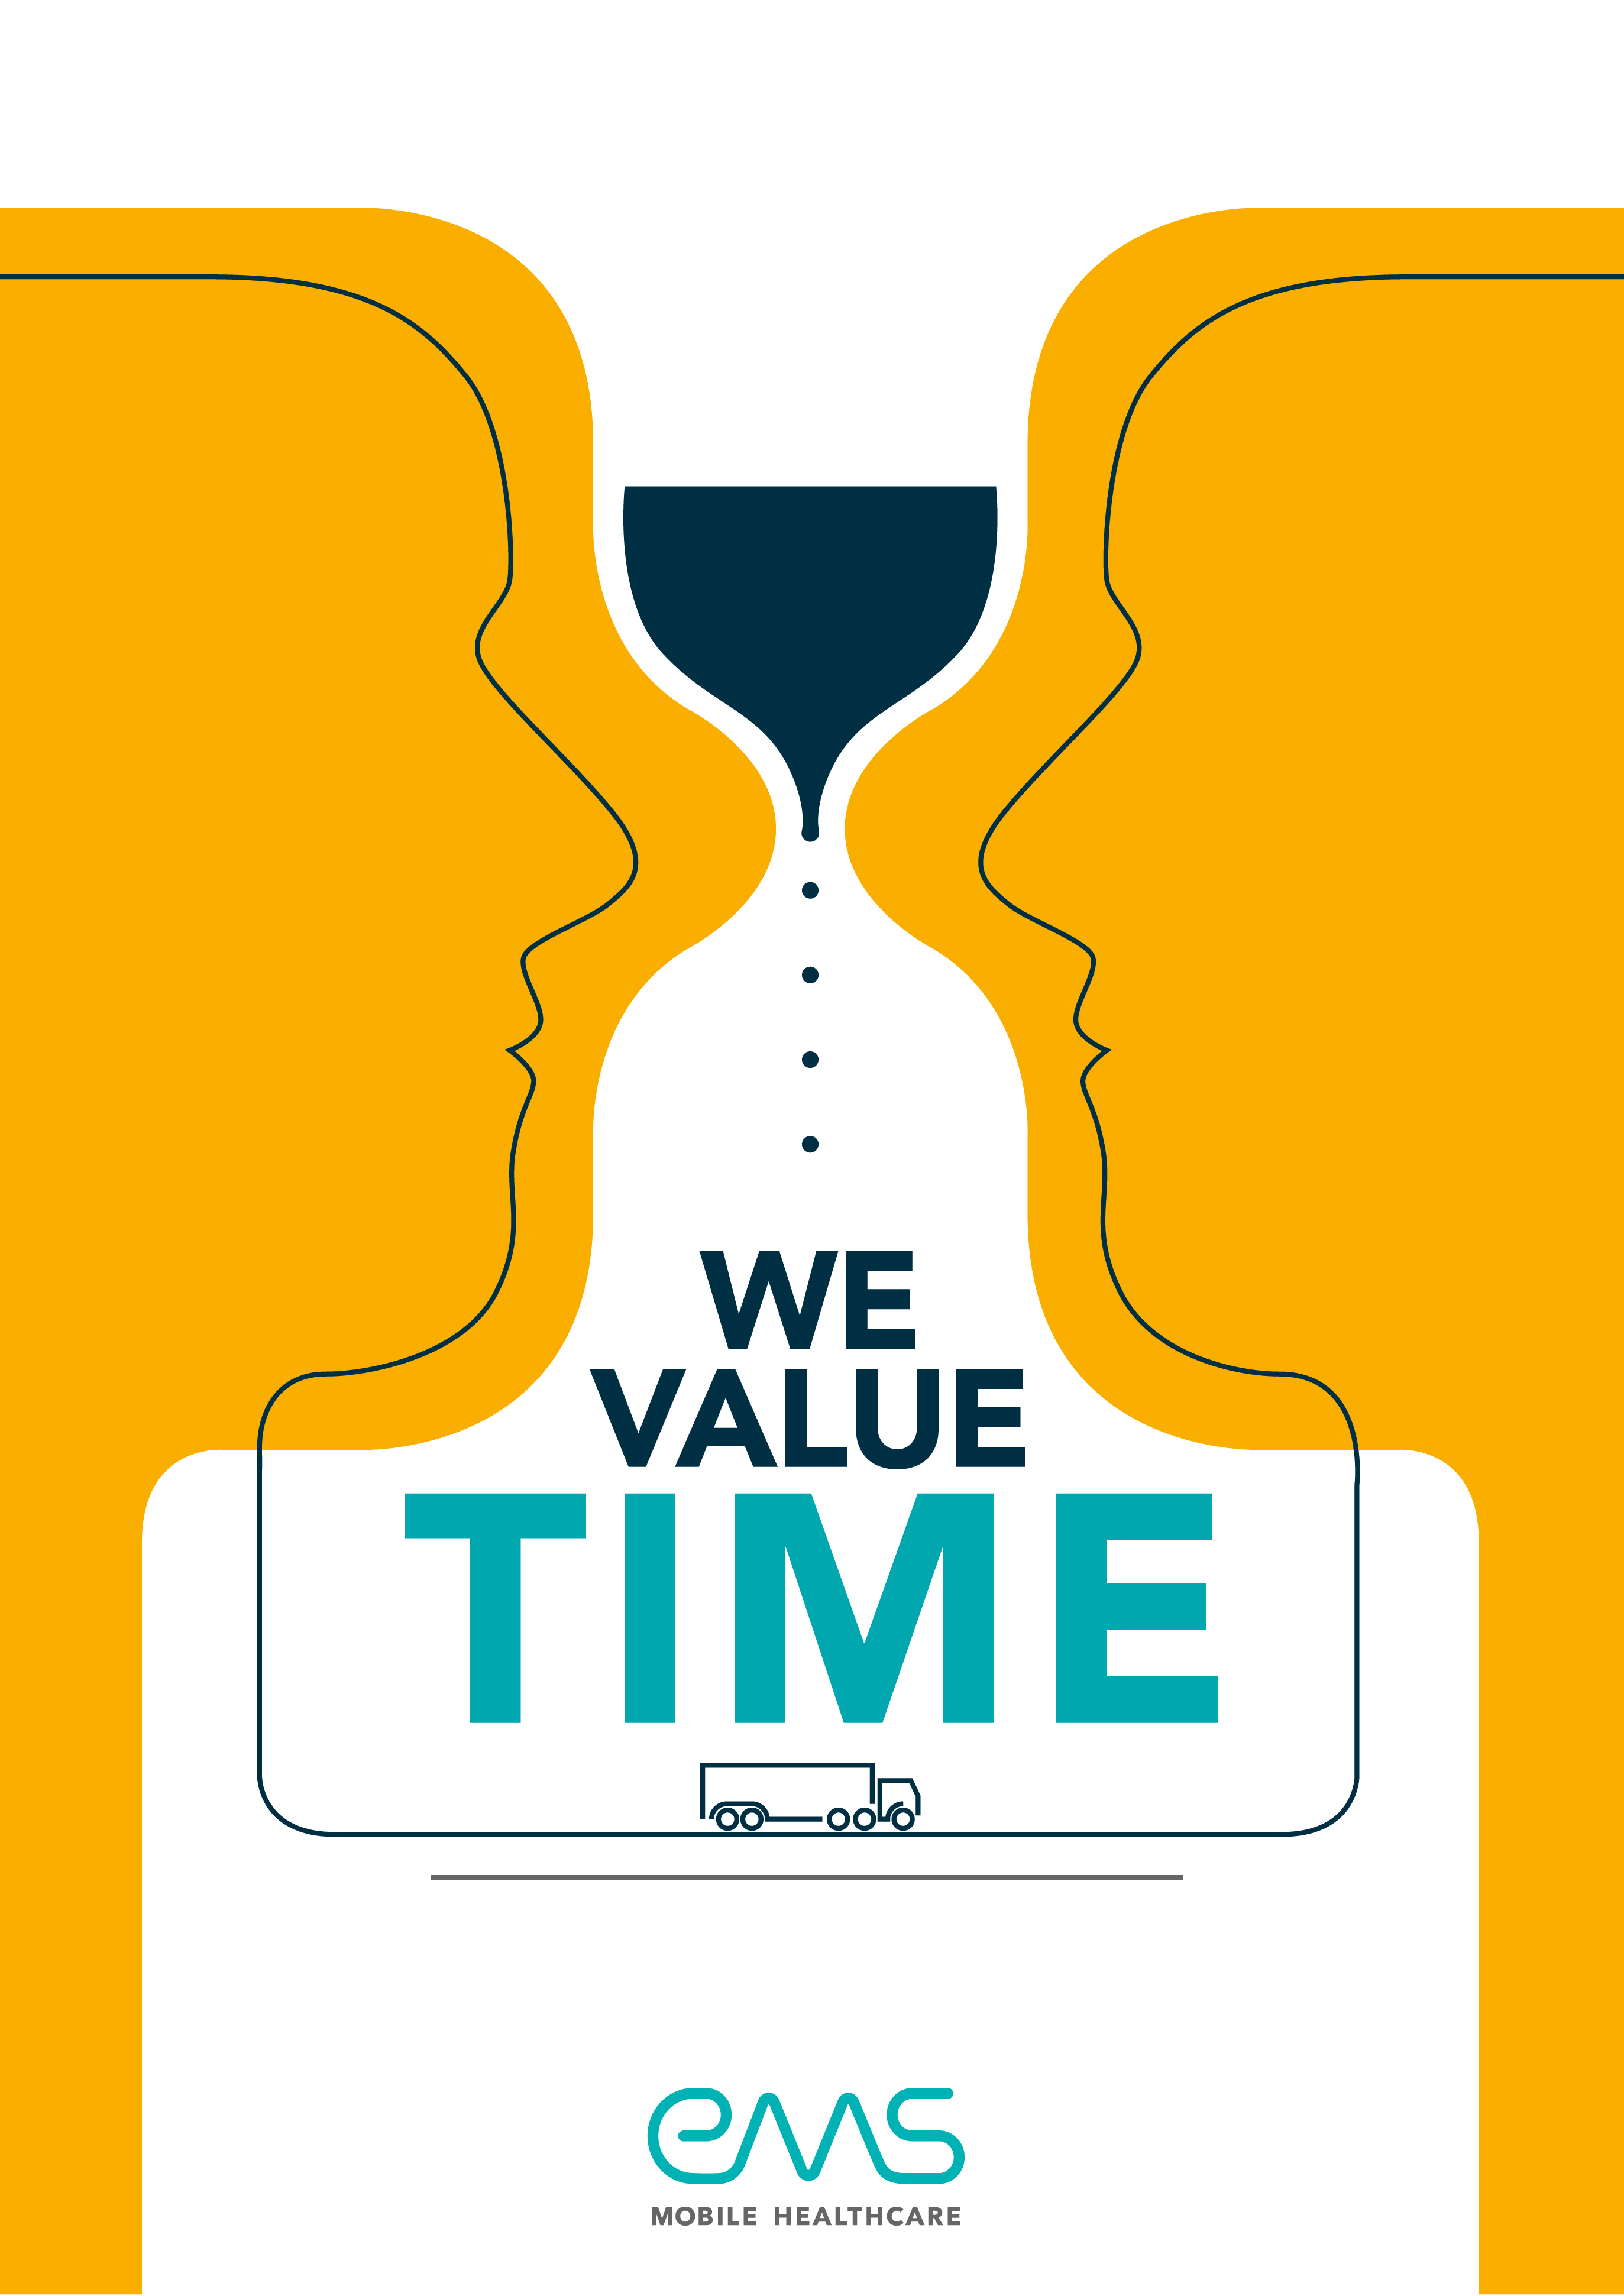 We value time